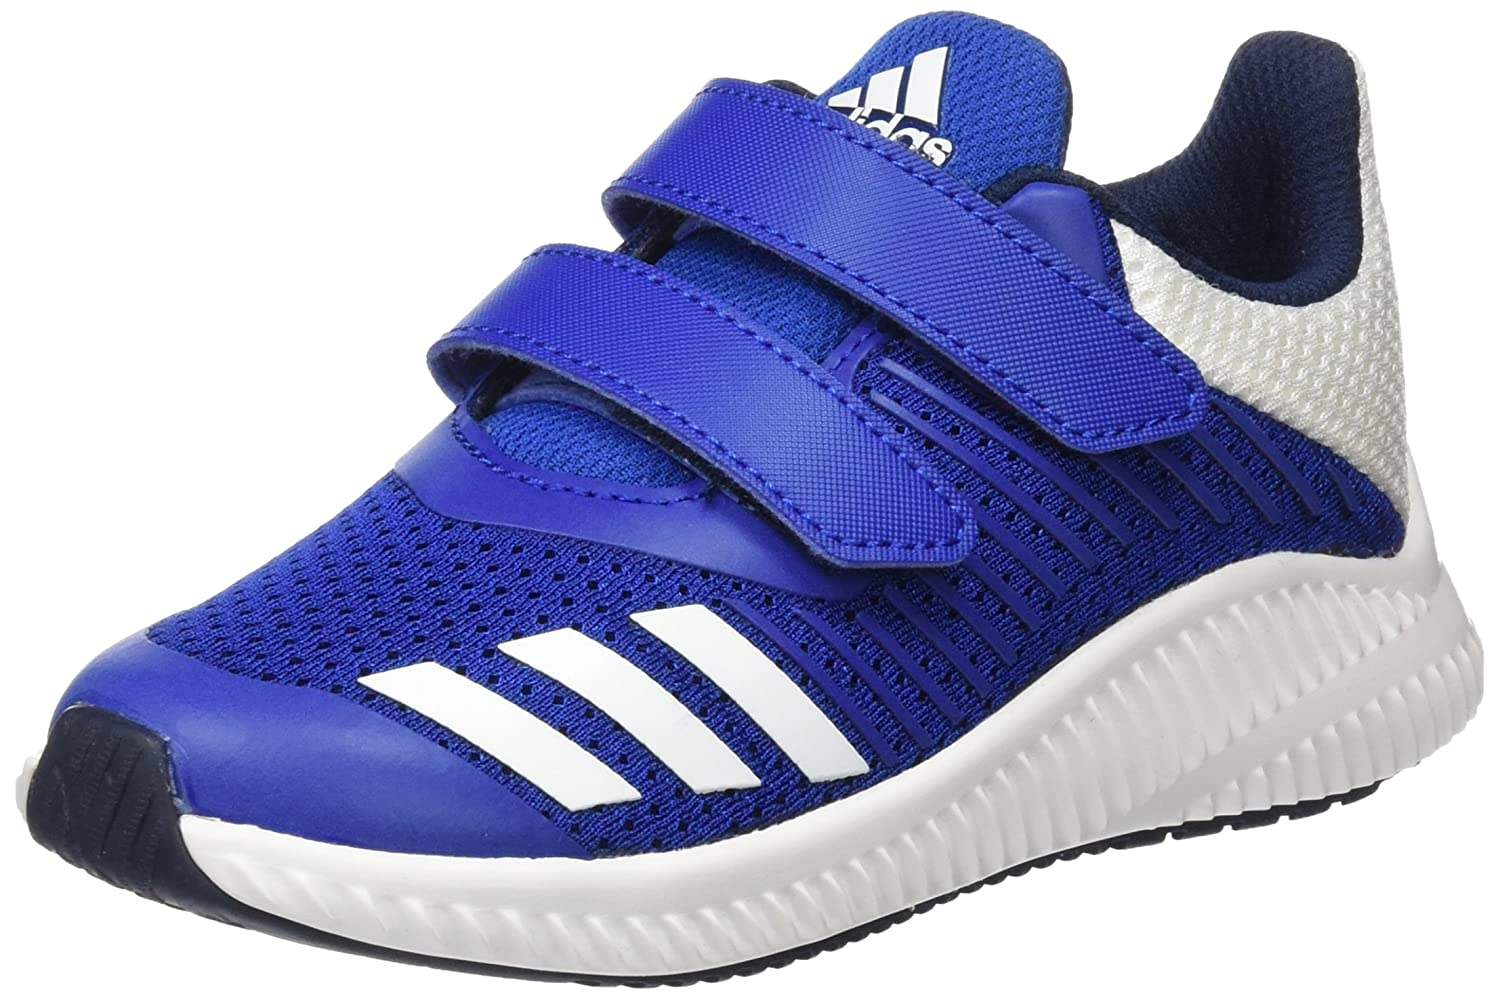 Adidas Fortarun CF K, Chaussures de Fitness Mixte Enfant BY8983